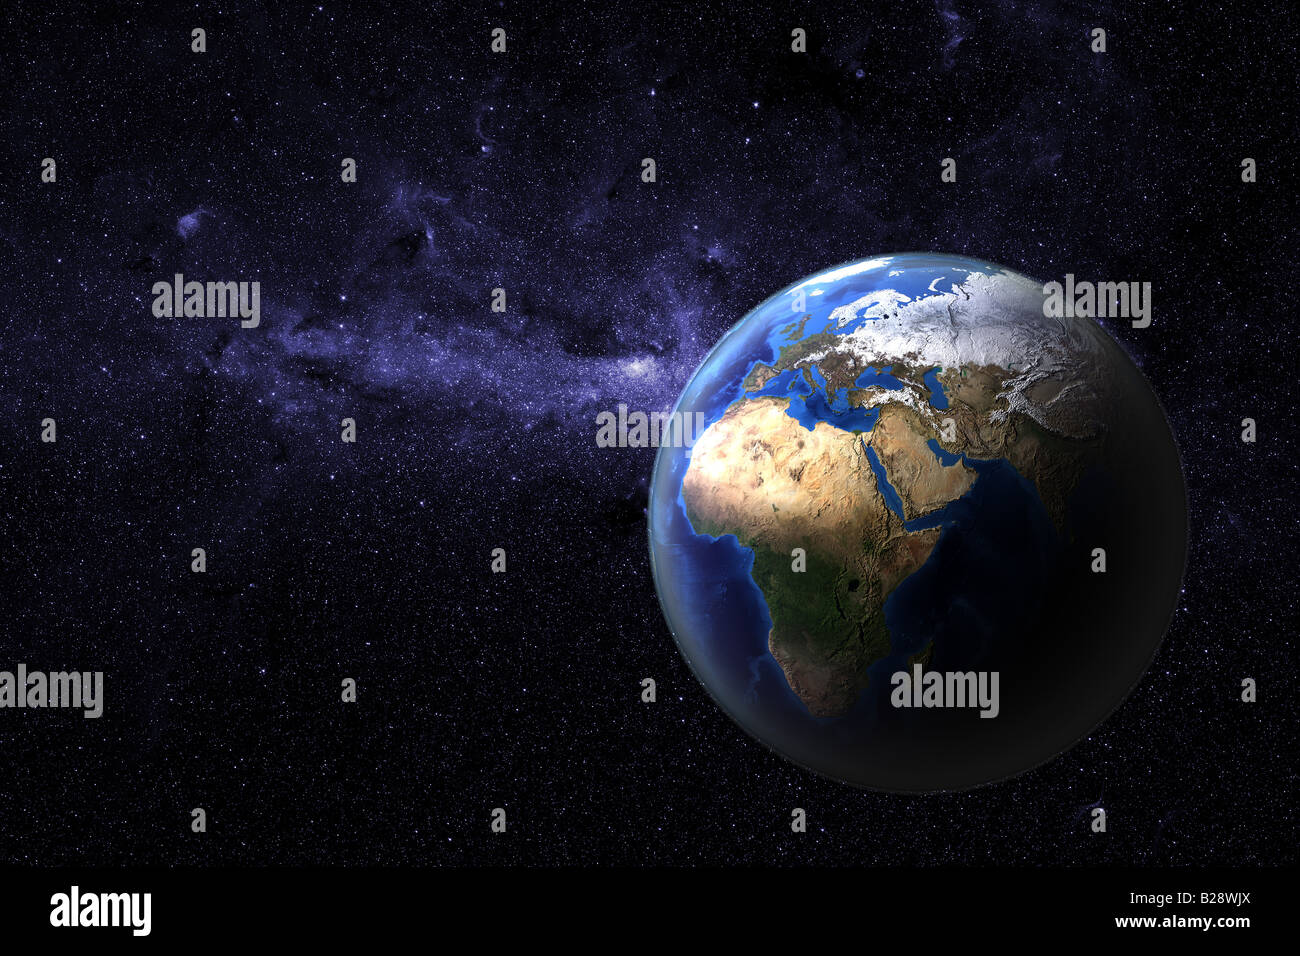 Planet earth - Stock Image